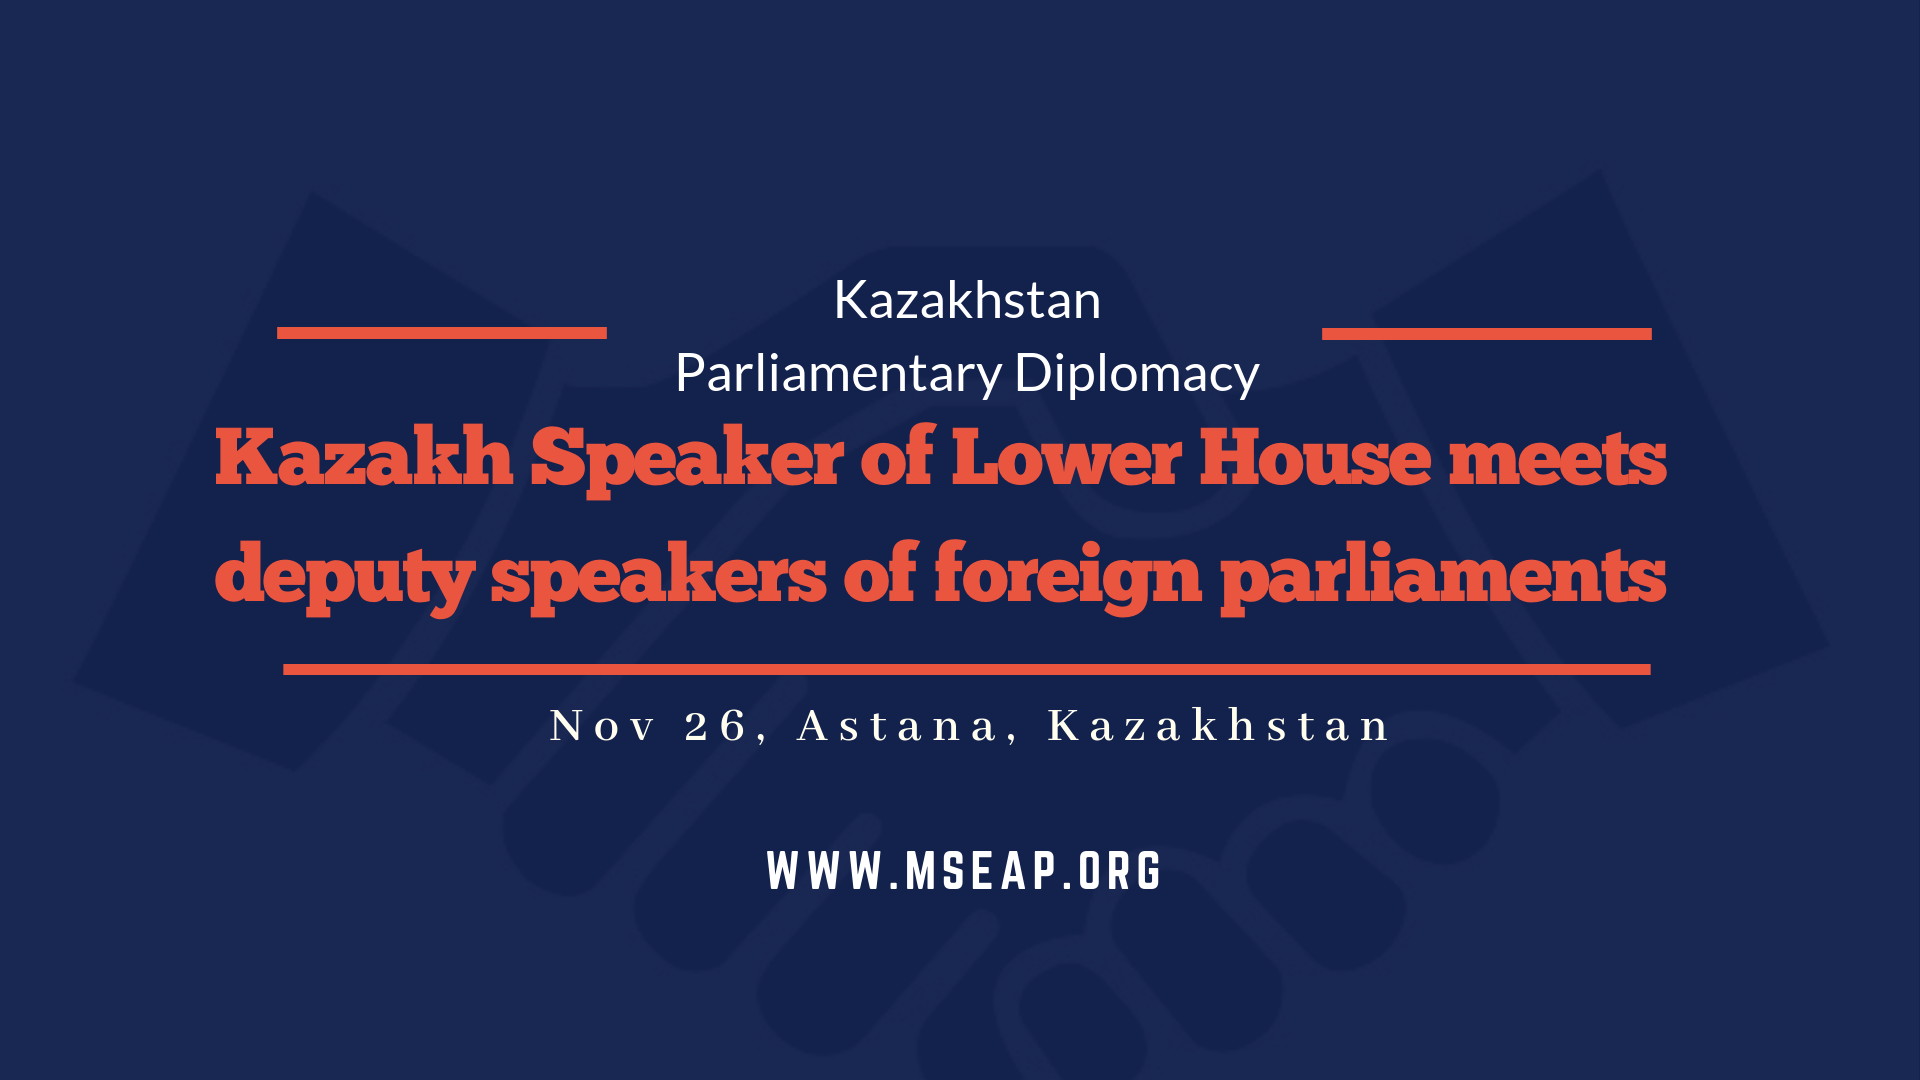 Chairman of lower house of the Kazakhstan Parliament holds bilateral meeting with deputy speakers at Astana International Parliamentary Conference